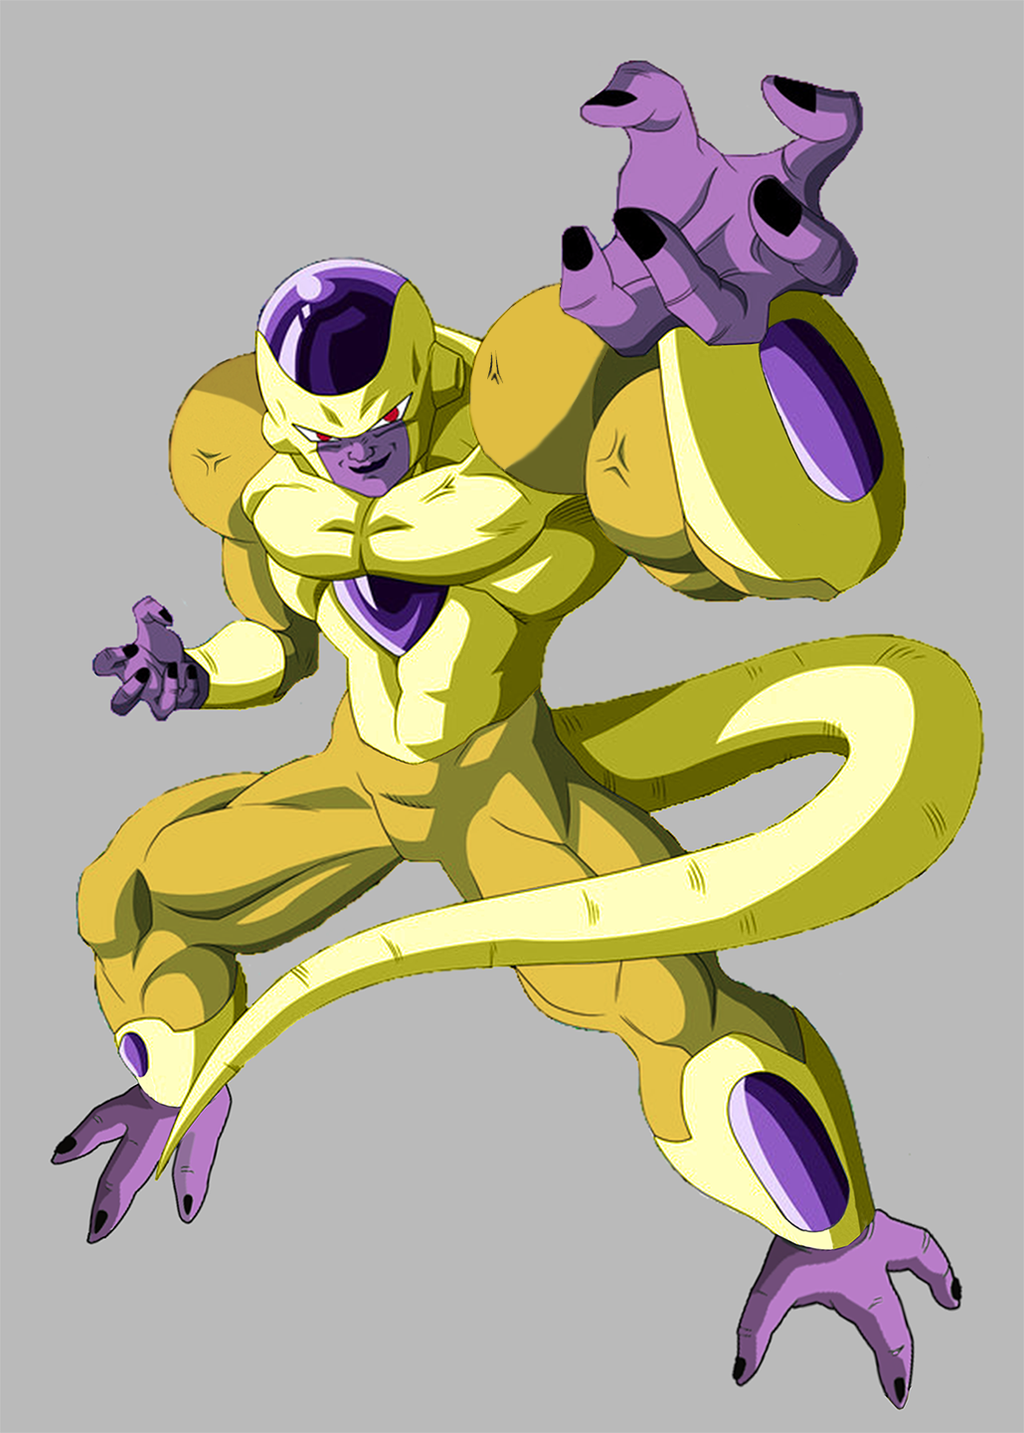 Dragon Ball Z Frieza 100 Wiring Diagrams A604transmissiondiagramautomatic Grandcherokeew5j400automatic Images Gallery